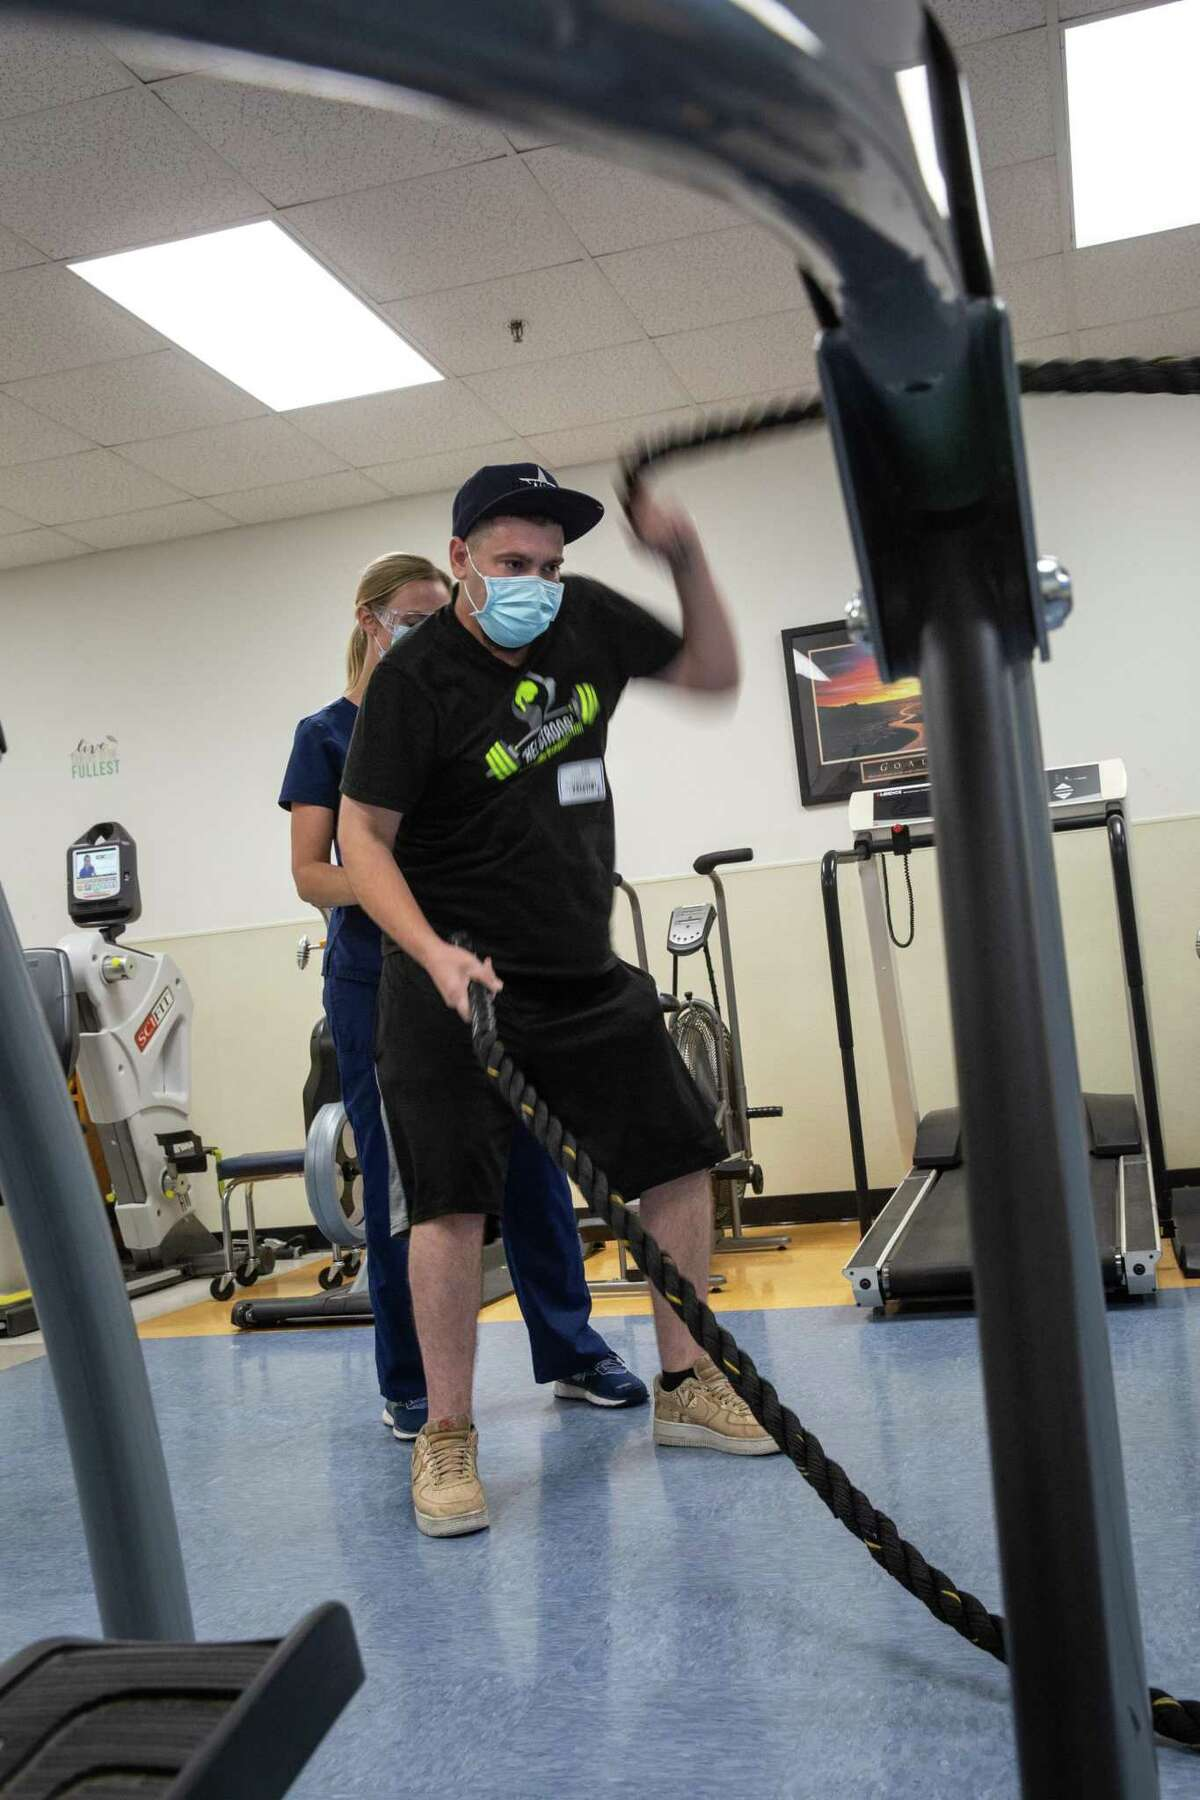 Jonathan Bomar, 31, attends his weekly physical therapy at TIRR Memorial Hermann Outpatient Rehabilitation - Kirby Glen in Houston, TX on Oct. 13, 2020.